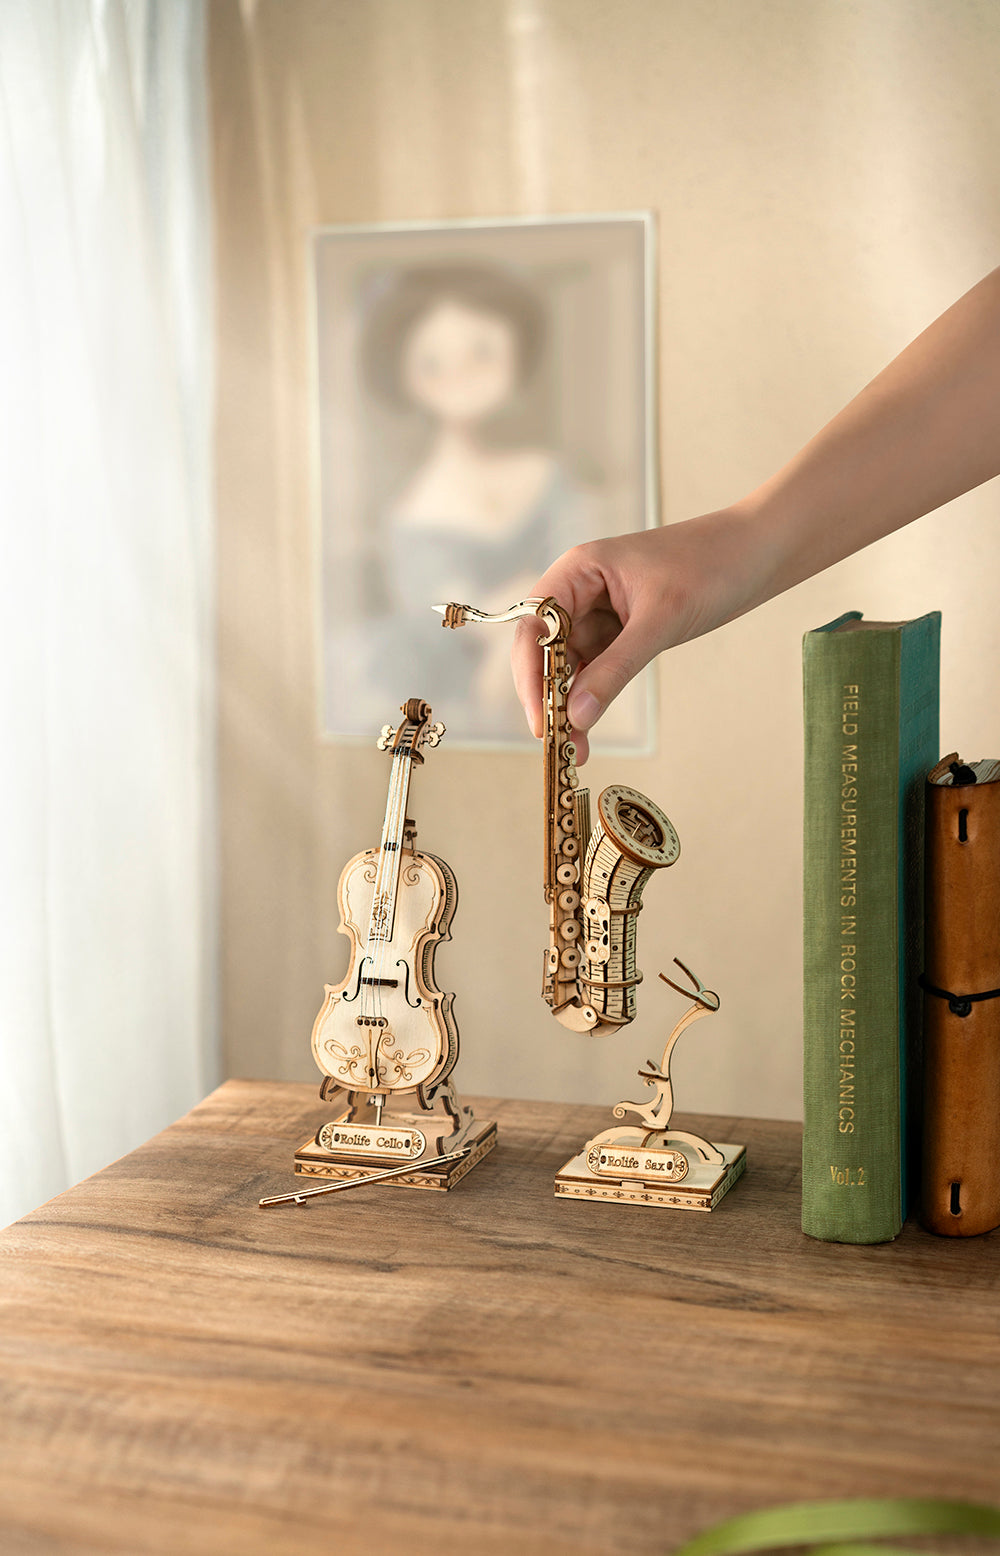 Rolife Modern 3D Wooden Puzzle - Cello TG411